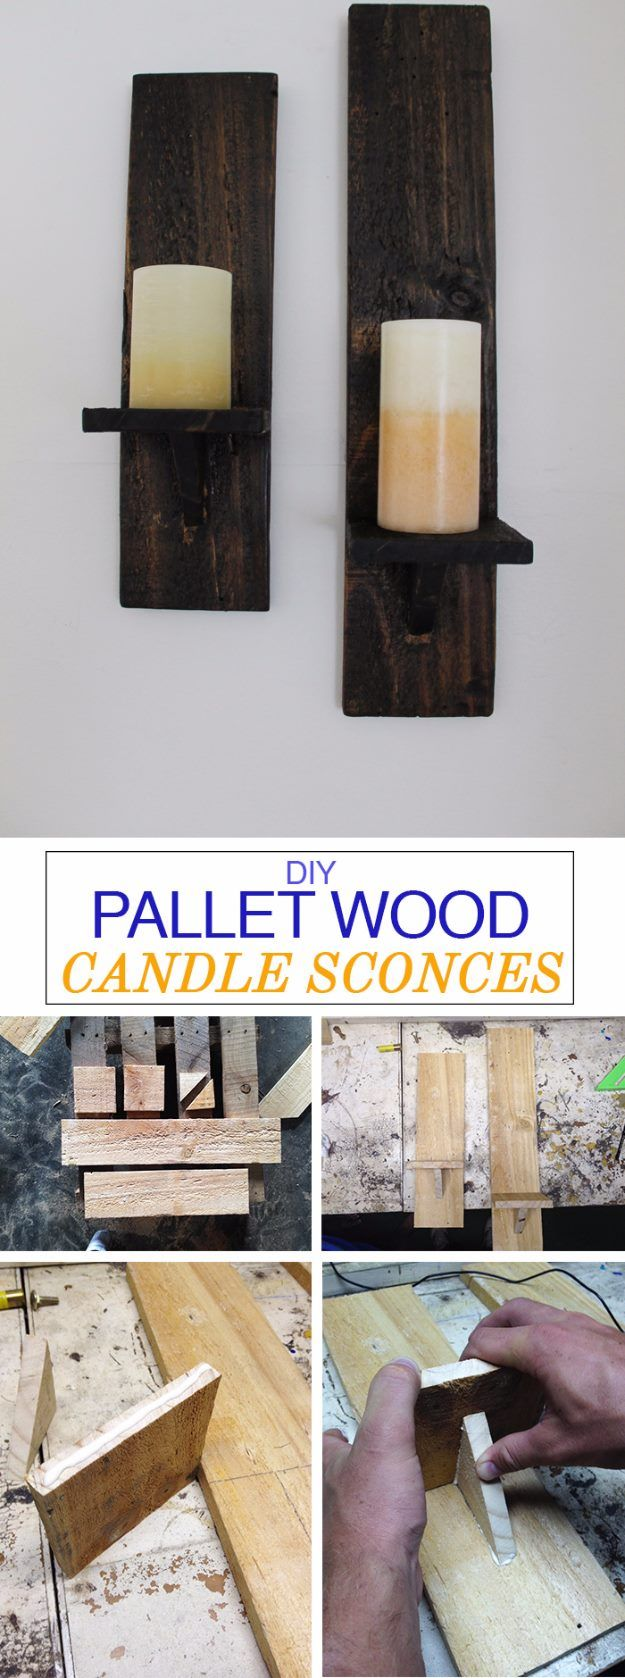 DIY Pallet Proejcts That Are Easy To Make And Sell Today We Present You One Collection Of 20 Projects Offers Inspiring Ideas